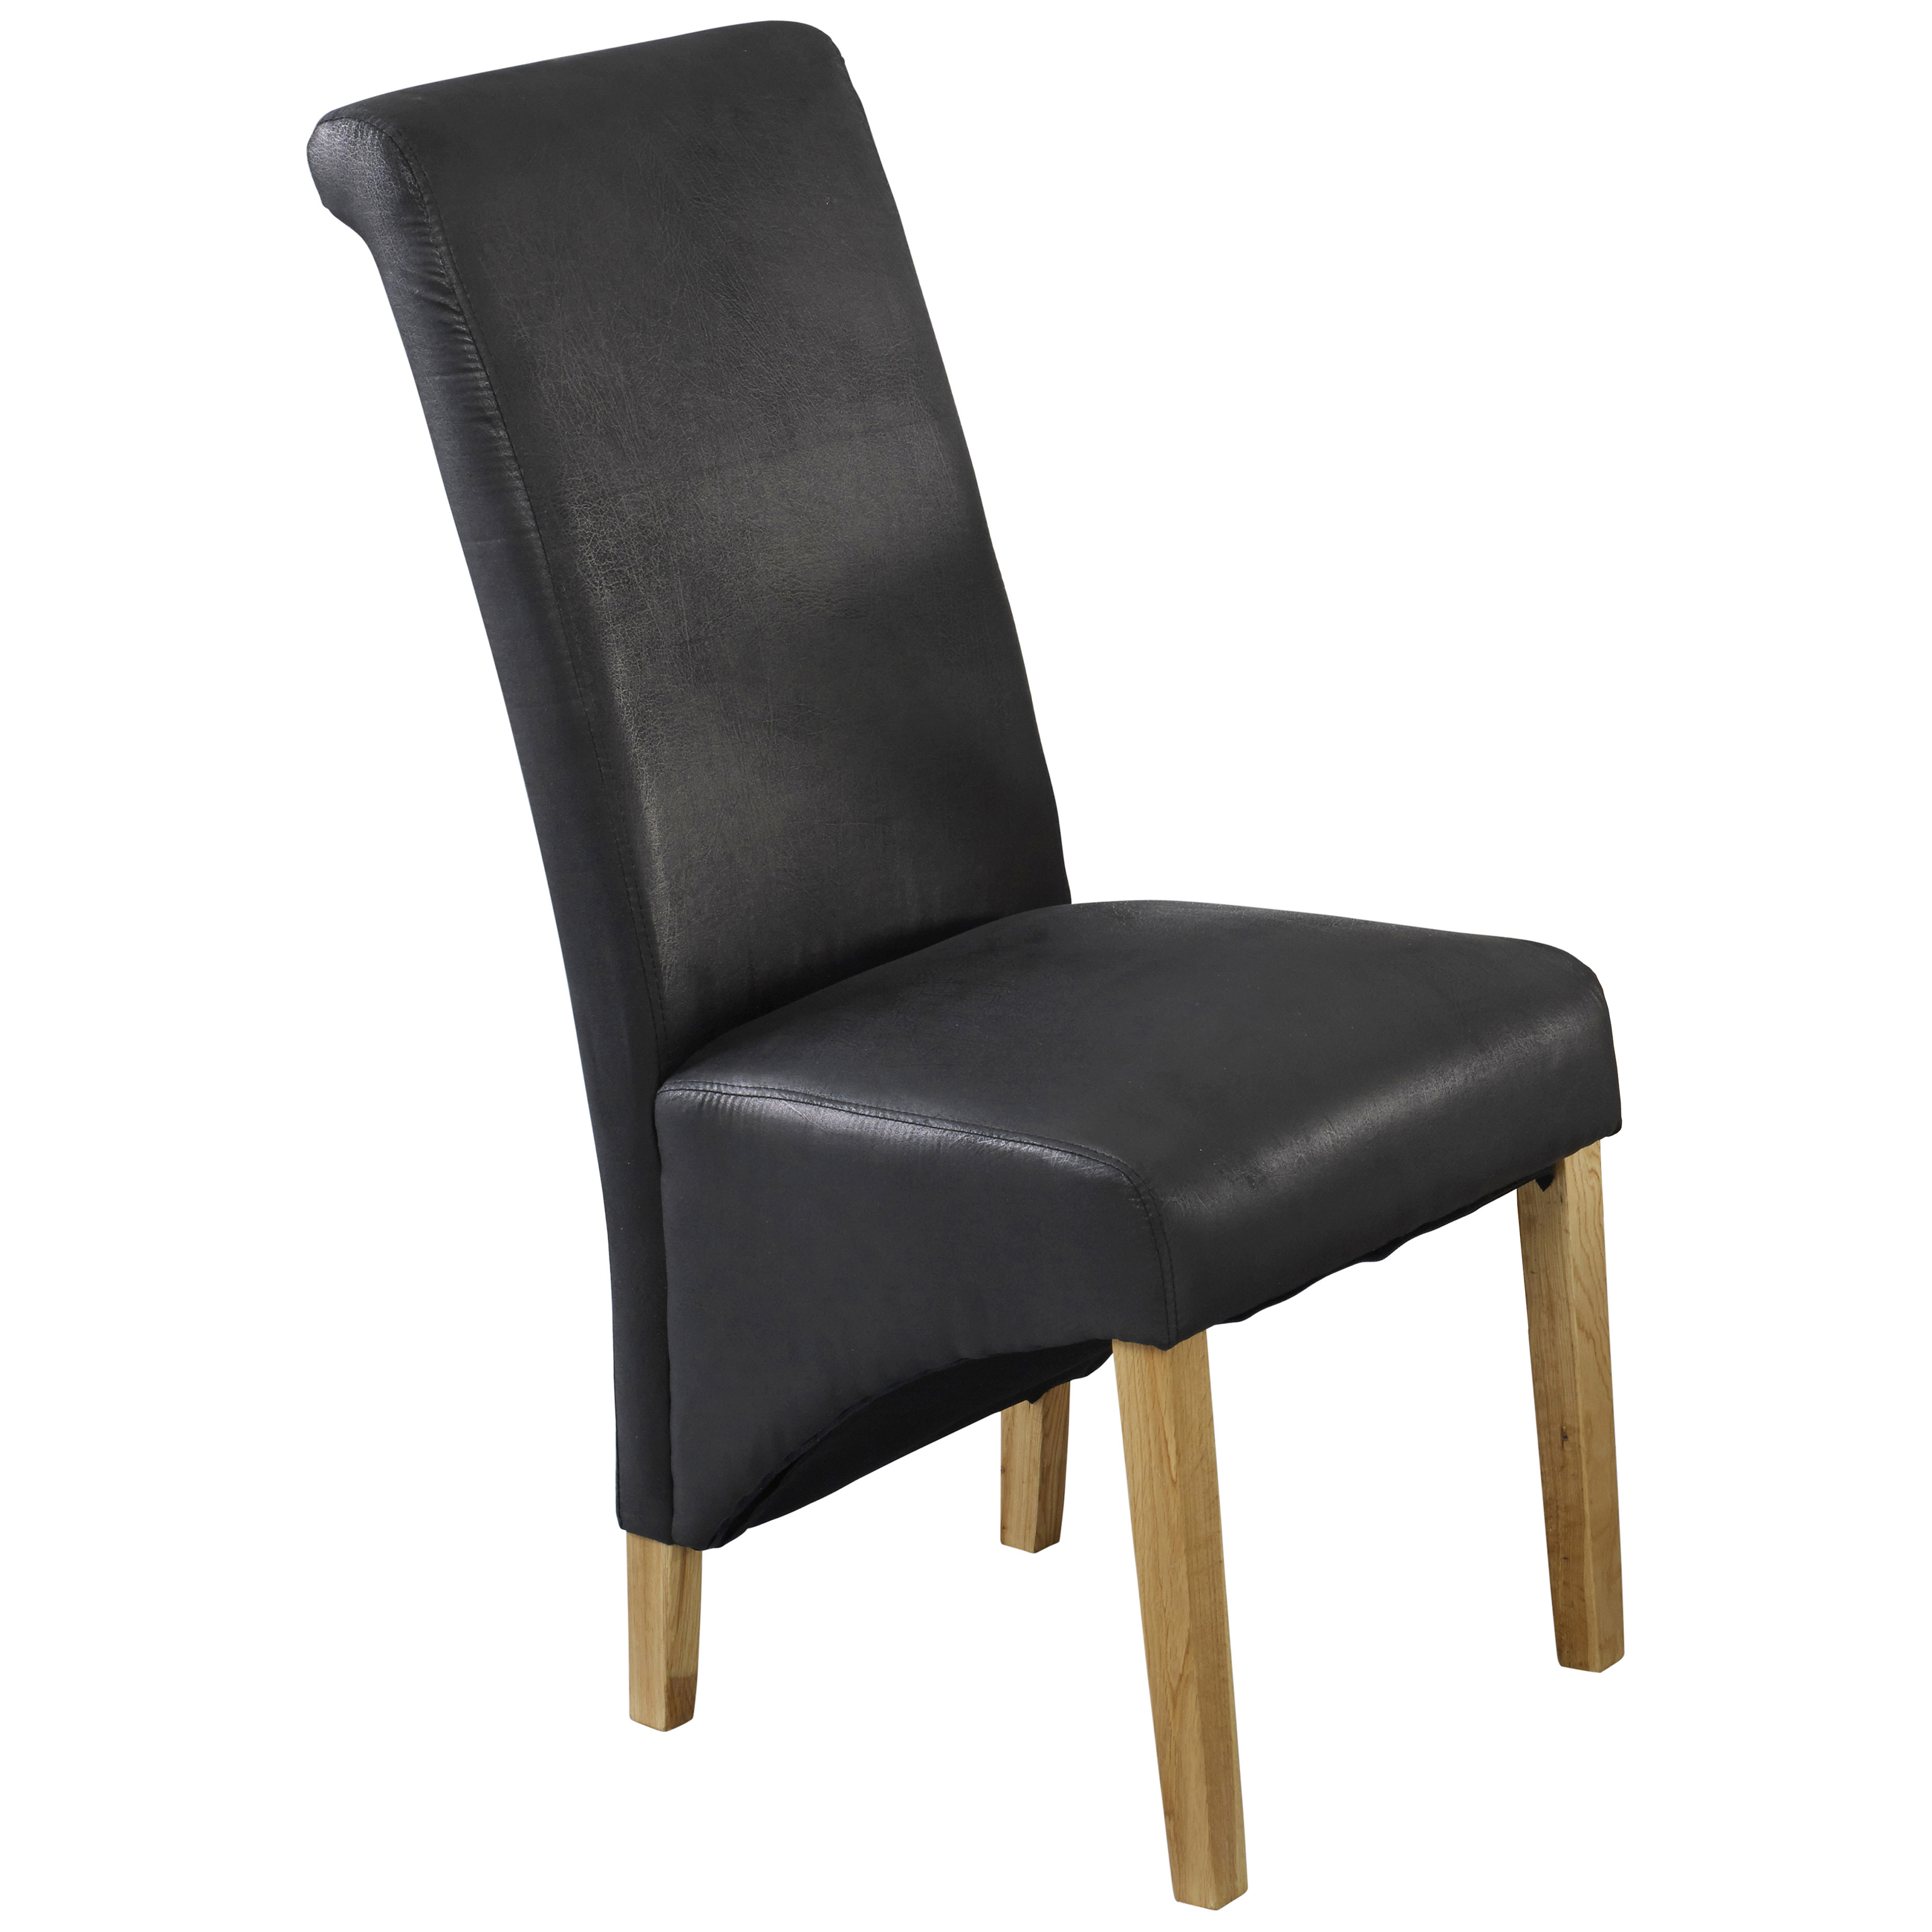 Pack of 2 Faux Leather Dining Seat Chair Black Brown eBay : l630trevisodiningchairpackof2black1 from www.ebay.co.uk size 3072 x 3072 jpeg 1466kB